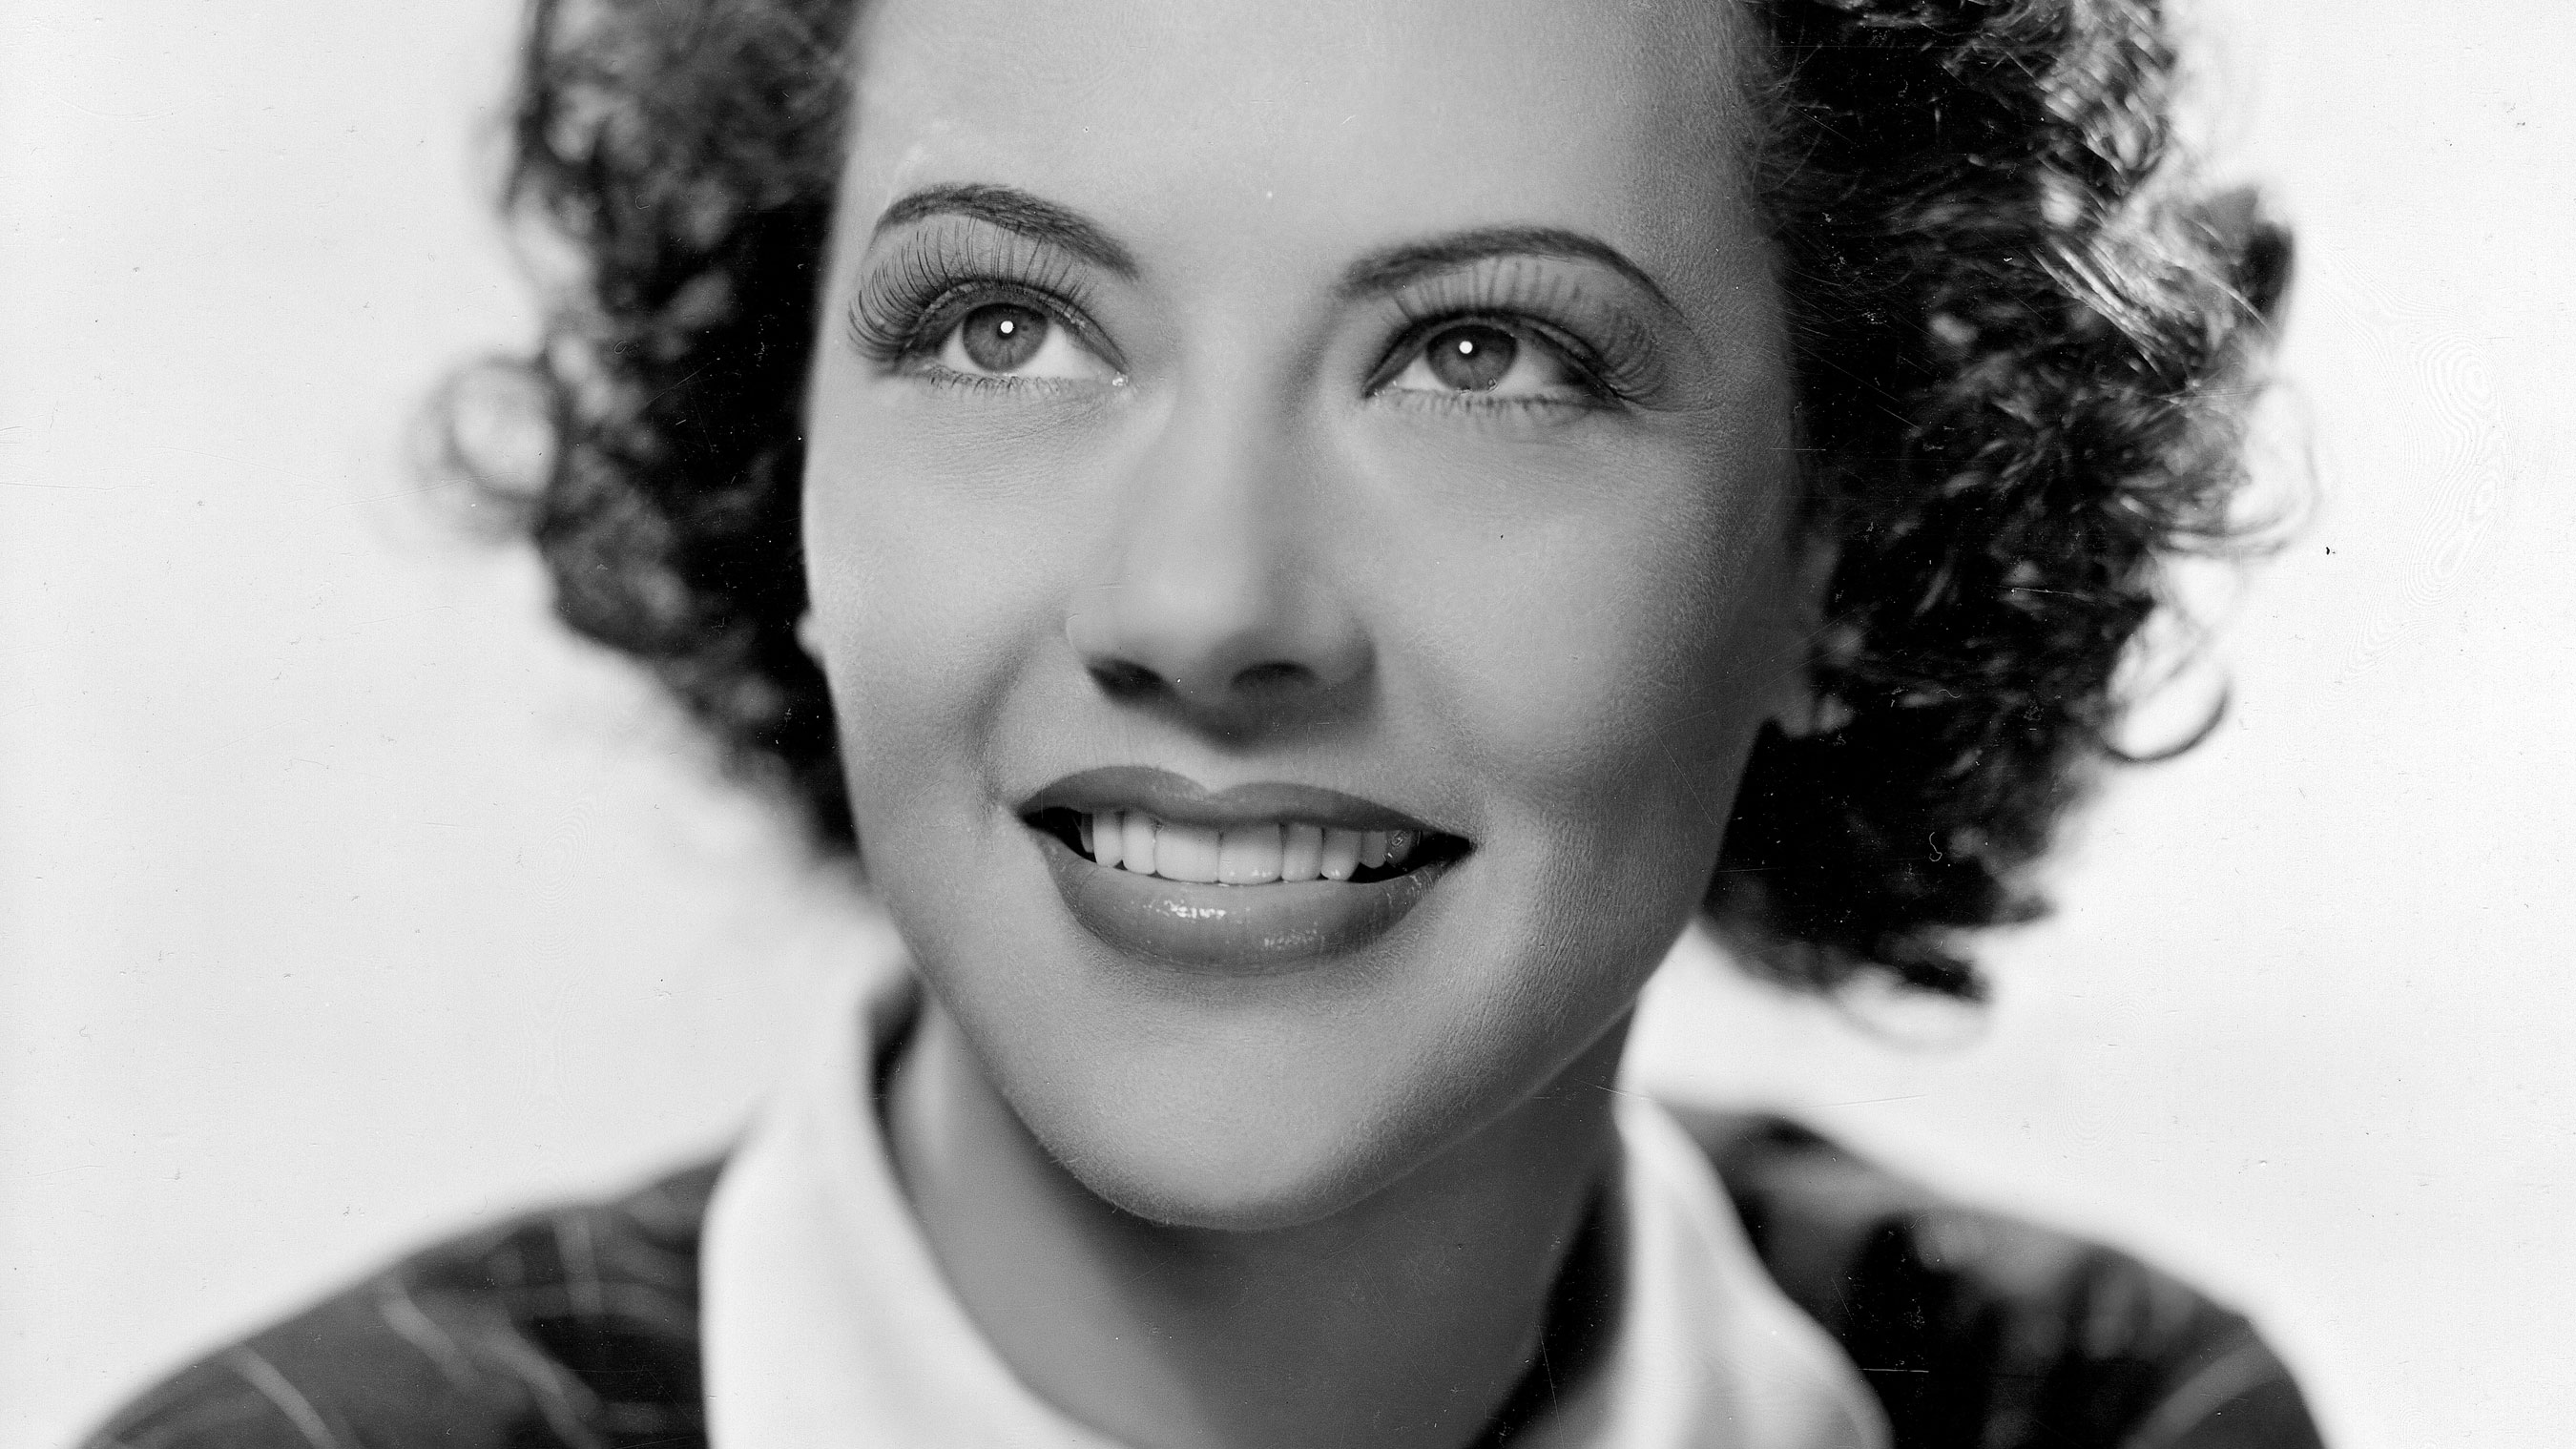 The Fair-Skinned Black Actress Who Refused to 'Pass' in 1930s Hollywood